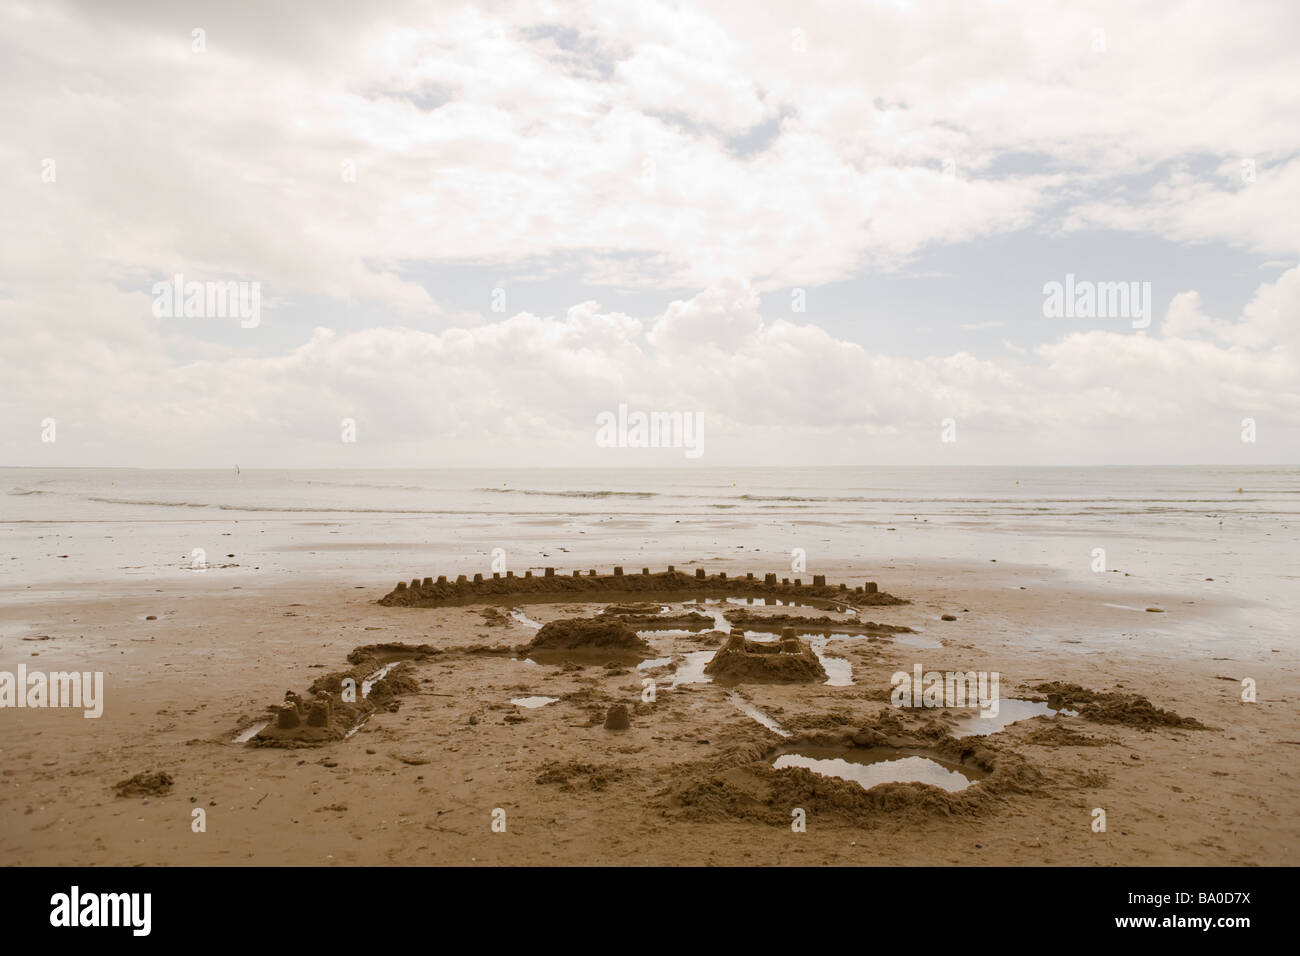 An elaborate sand castle with a network of moats and canals, on a beach under cloudy sky, and distant waves from - Stock Image